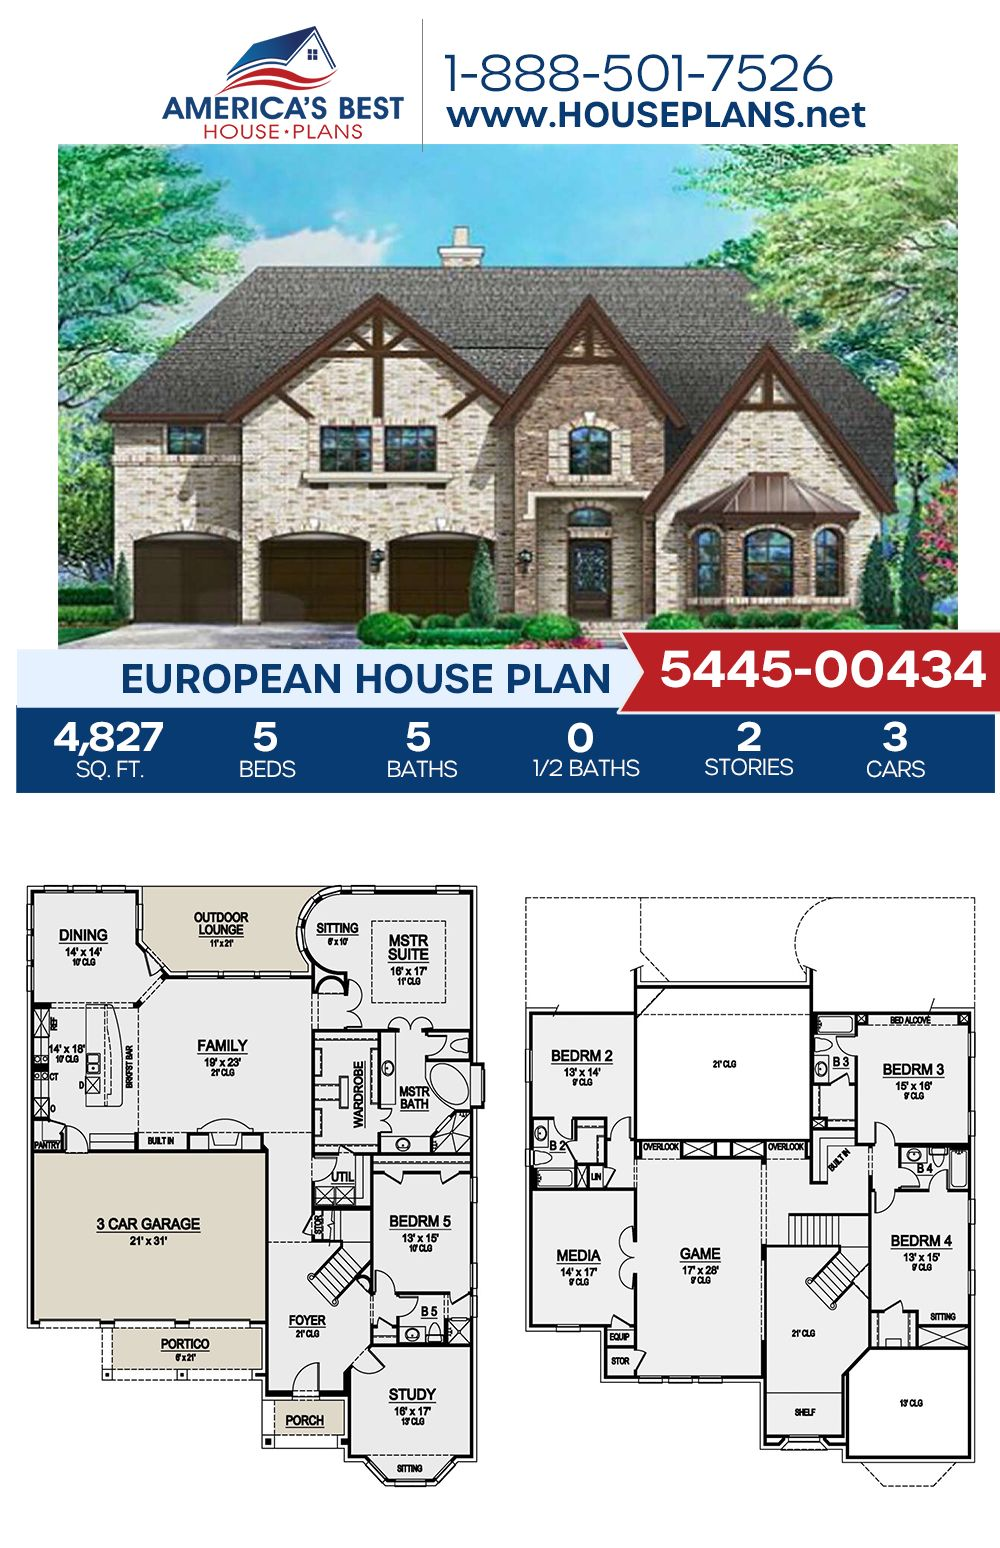 House Plan 5445 00434 French Country Plan 4 827 Square Feet 5 Bedrooms 5 Bathrooms In 2021 European House Dream House Plans House Plans